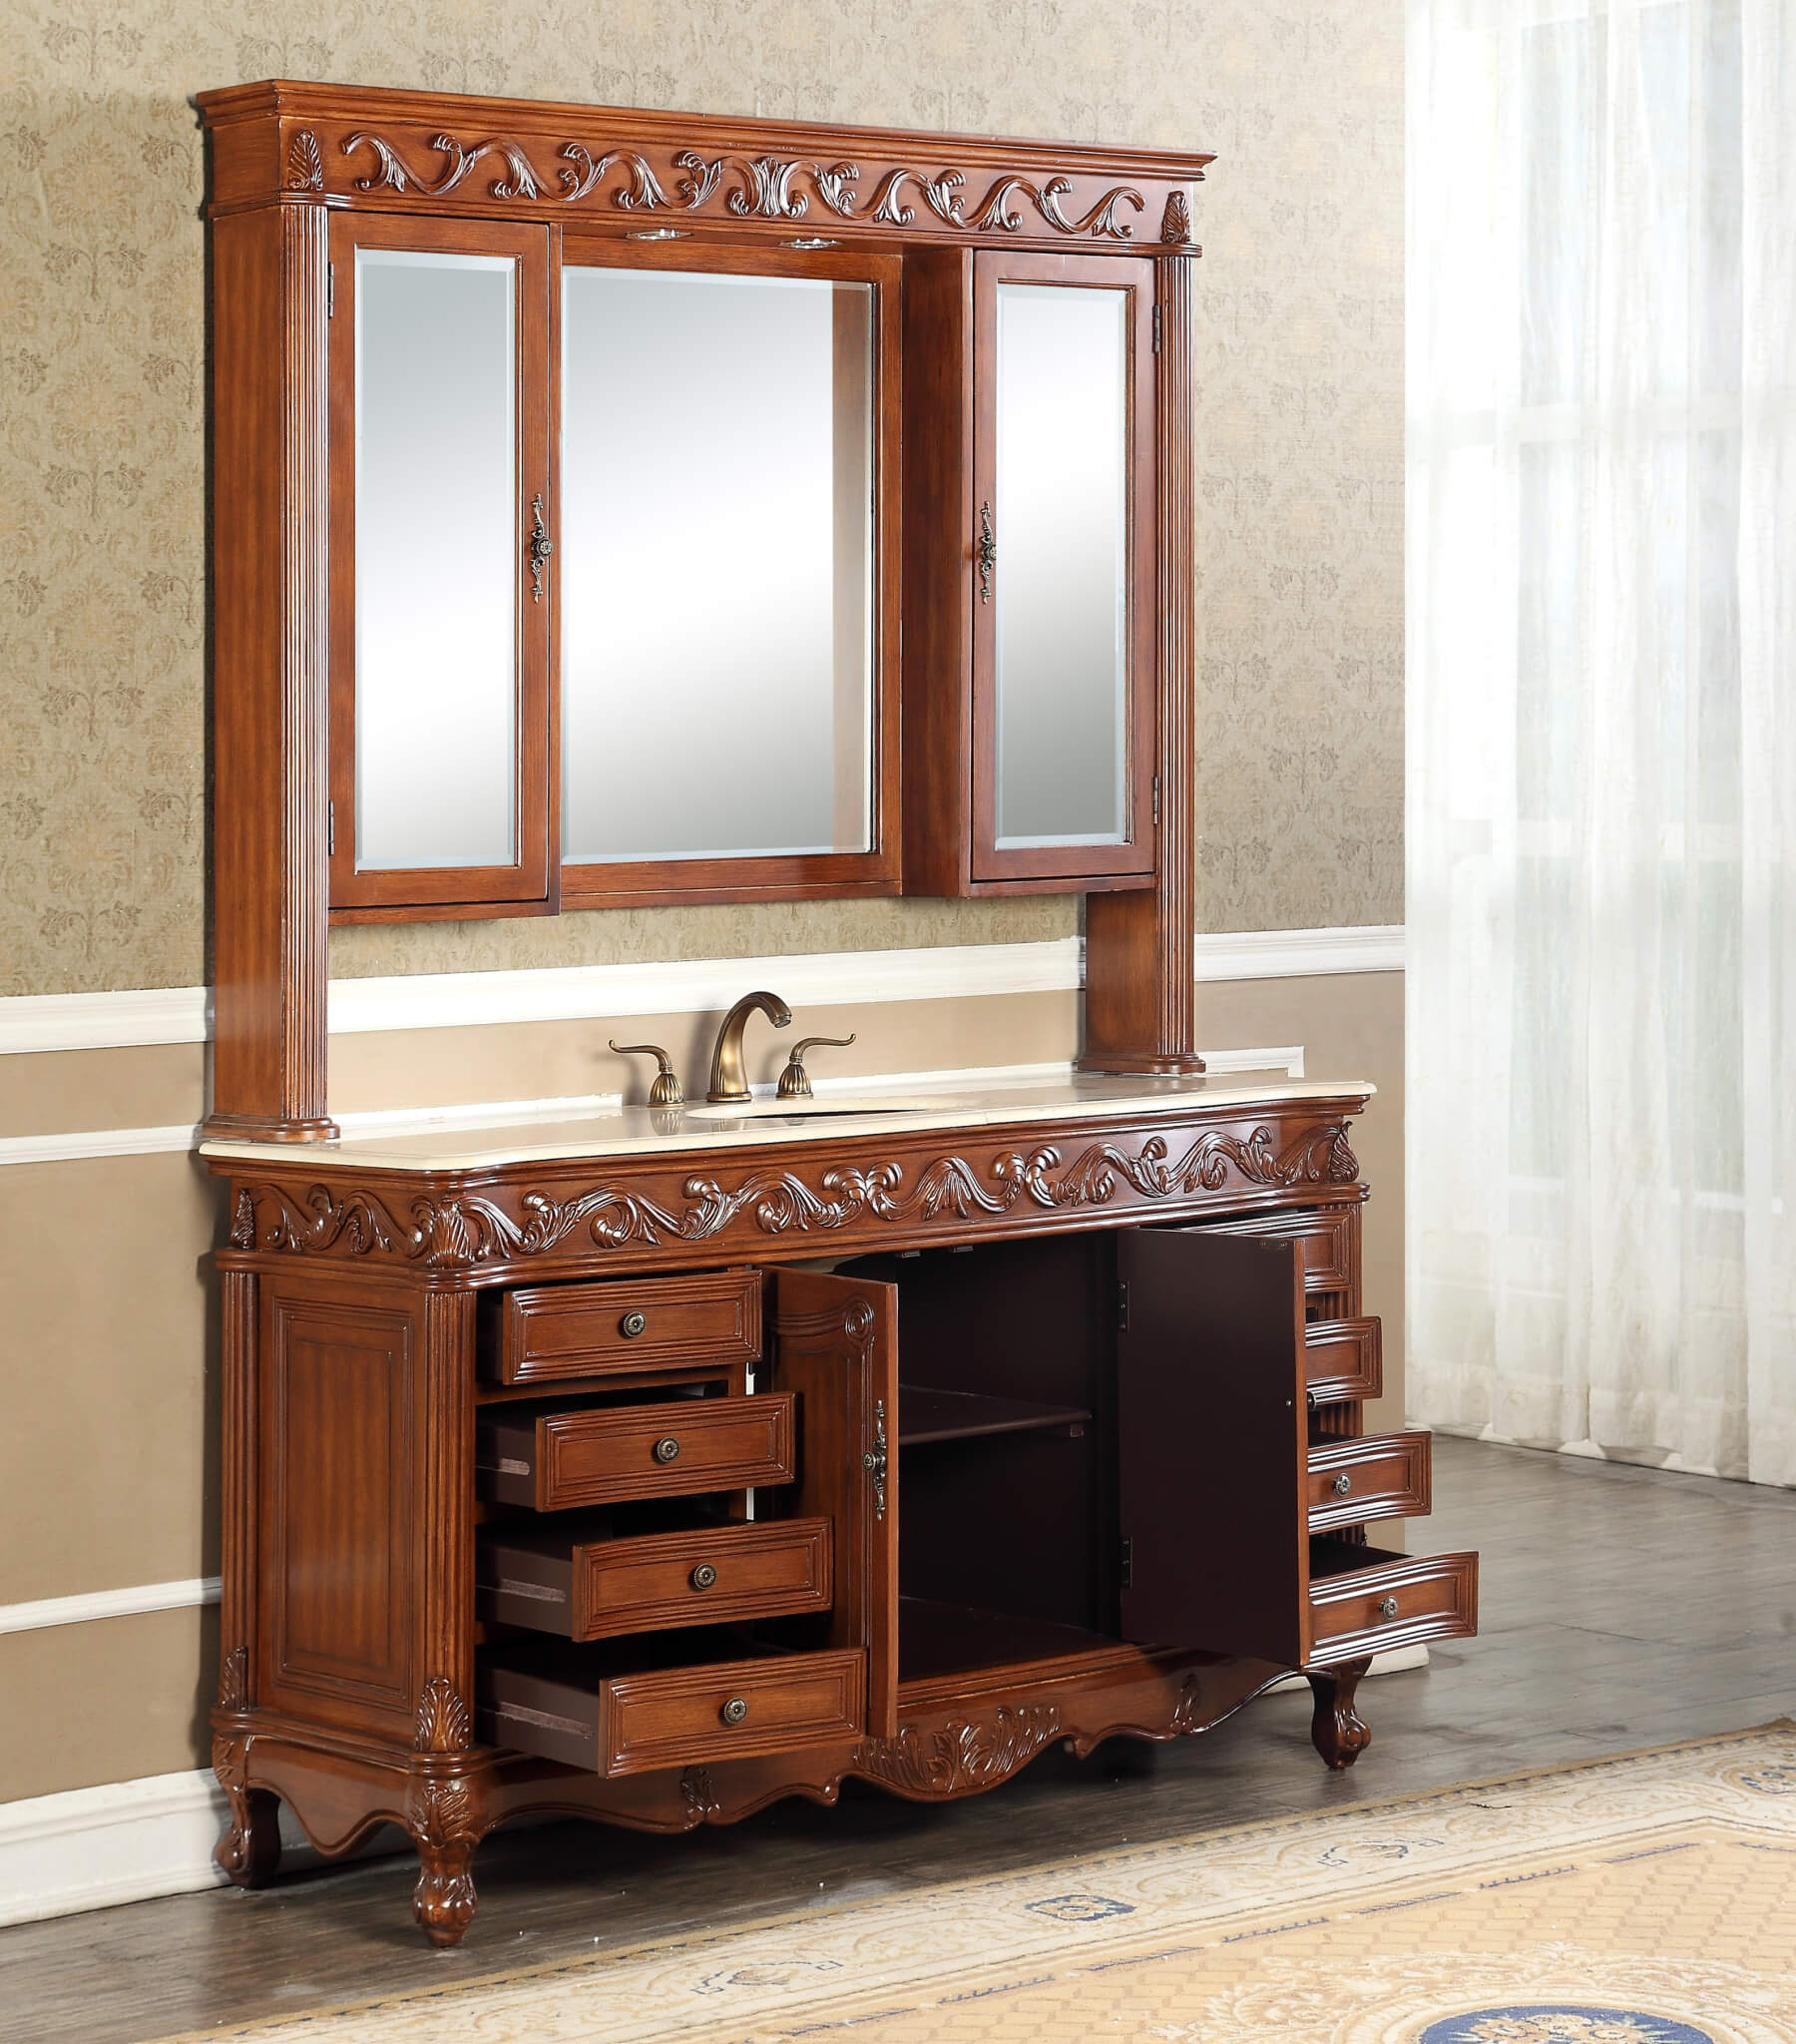 Tuscan bathroom vanities tuscan bathroom vanities 28 for Tuscan bathroom vanity cabinets